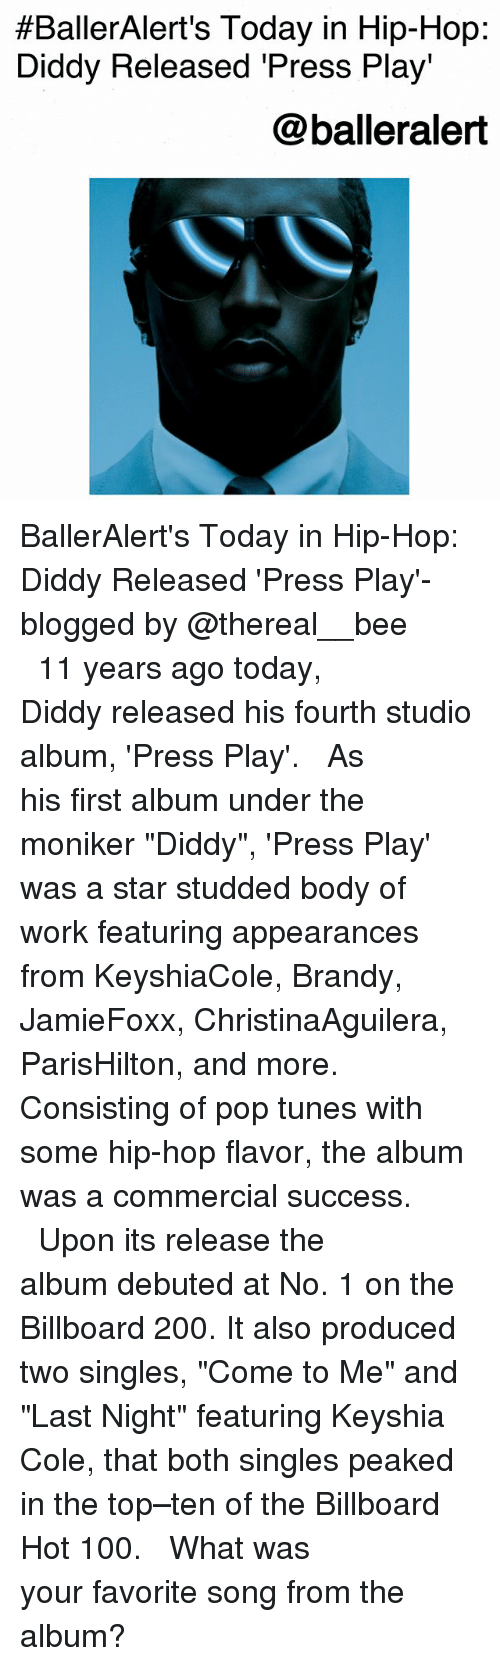 "Anaconda, Bailey Jay, and Billboard:  #BallerAlert's Today in Hip-Hop:  Diddy Released 'Press Play'  @balleralert BallerAlert's Today in Hip-Hop: Diddy Released 'Press Play'-blogged by @thereal__bee ⠀⠀⠀⠀⠀⠀⠀⠀⠀ ⠀⠀ 11 years ago today, Diddy released his fourth studio album, 'Press Play'. ⠀⠀⠀⠀⠀⠀⠀⠀⠀ ⠀⠀ As his first album under the moniker ""Diddy"", 'Press Play' was a star studded body of work featuring appearances from KeyshiaCole, Brandy, JamieFoxx, ChristinaAguilera, ParisHilton, and more. Consisting of pop tunes with some hip-hop flavor, the album was a commercial success. ⠀⠀⠀⠀⠀⠀⠀⠀⠀ ⠀⠀ Upon its release the album debuted at No. 1 on the Billboard 200. It also produced two singles, ""Come to Me"" and ""Last Night"" featuring Keyshia Cole, that both singles peaked in the top–ten of the Billboard Hot 100. ⠀⠀⠀⠀⠀⠀⠀⠀⠀ ⠀⠀ What was your favorite song from the album?"